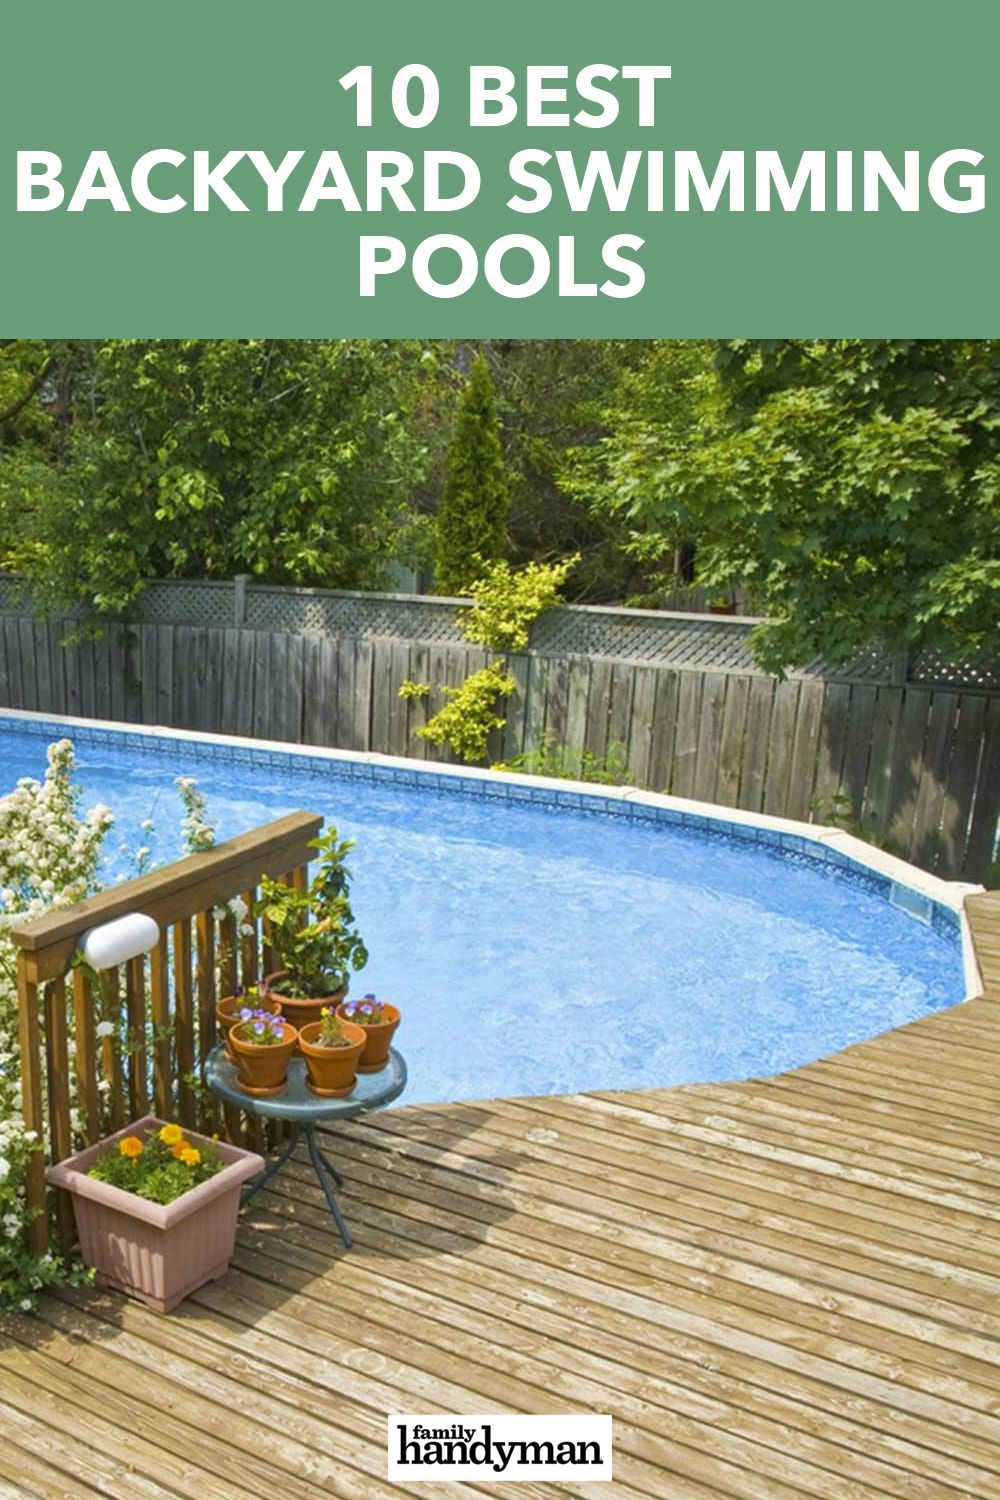 10 Best Backyard Swimming Pools For The Home Swimming Pools Backyard Swimming Pools Backyard